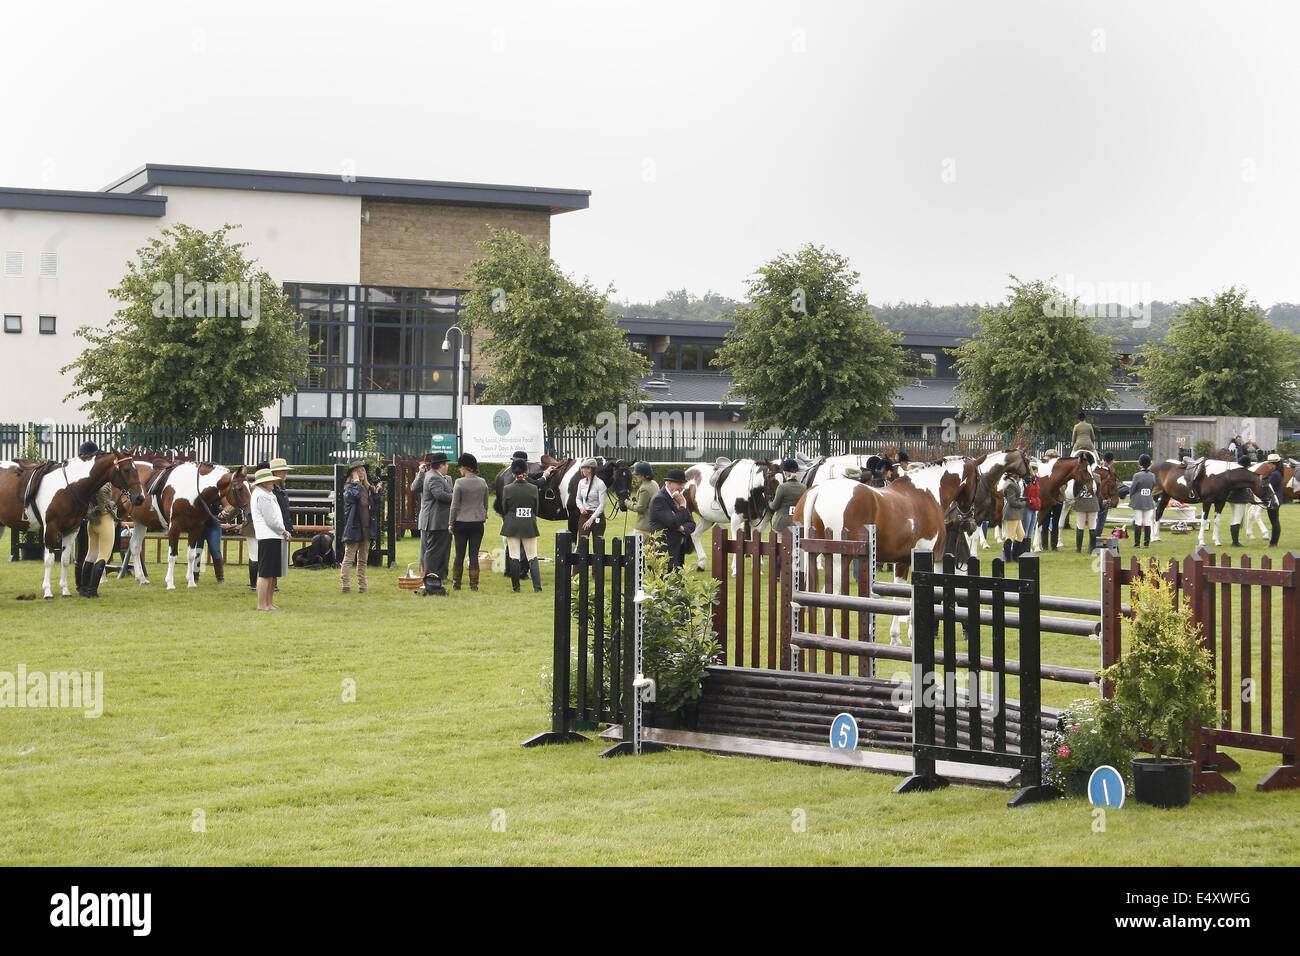 riders wating with horses to be awarded at Great Yorkshire Show, Harrogate, Yorkshire, UK - Stock Image